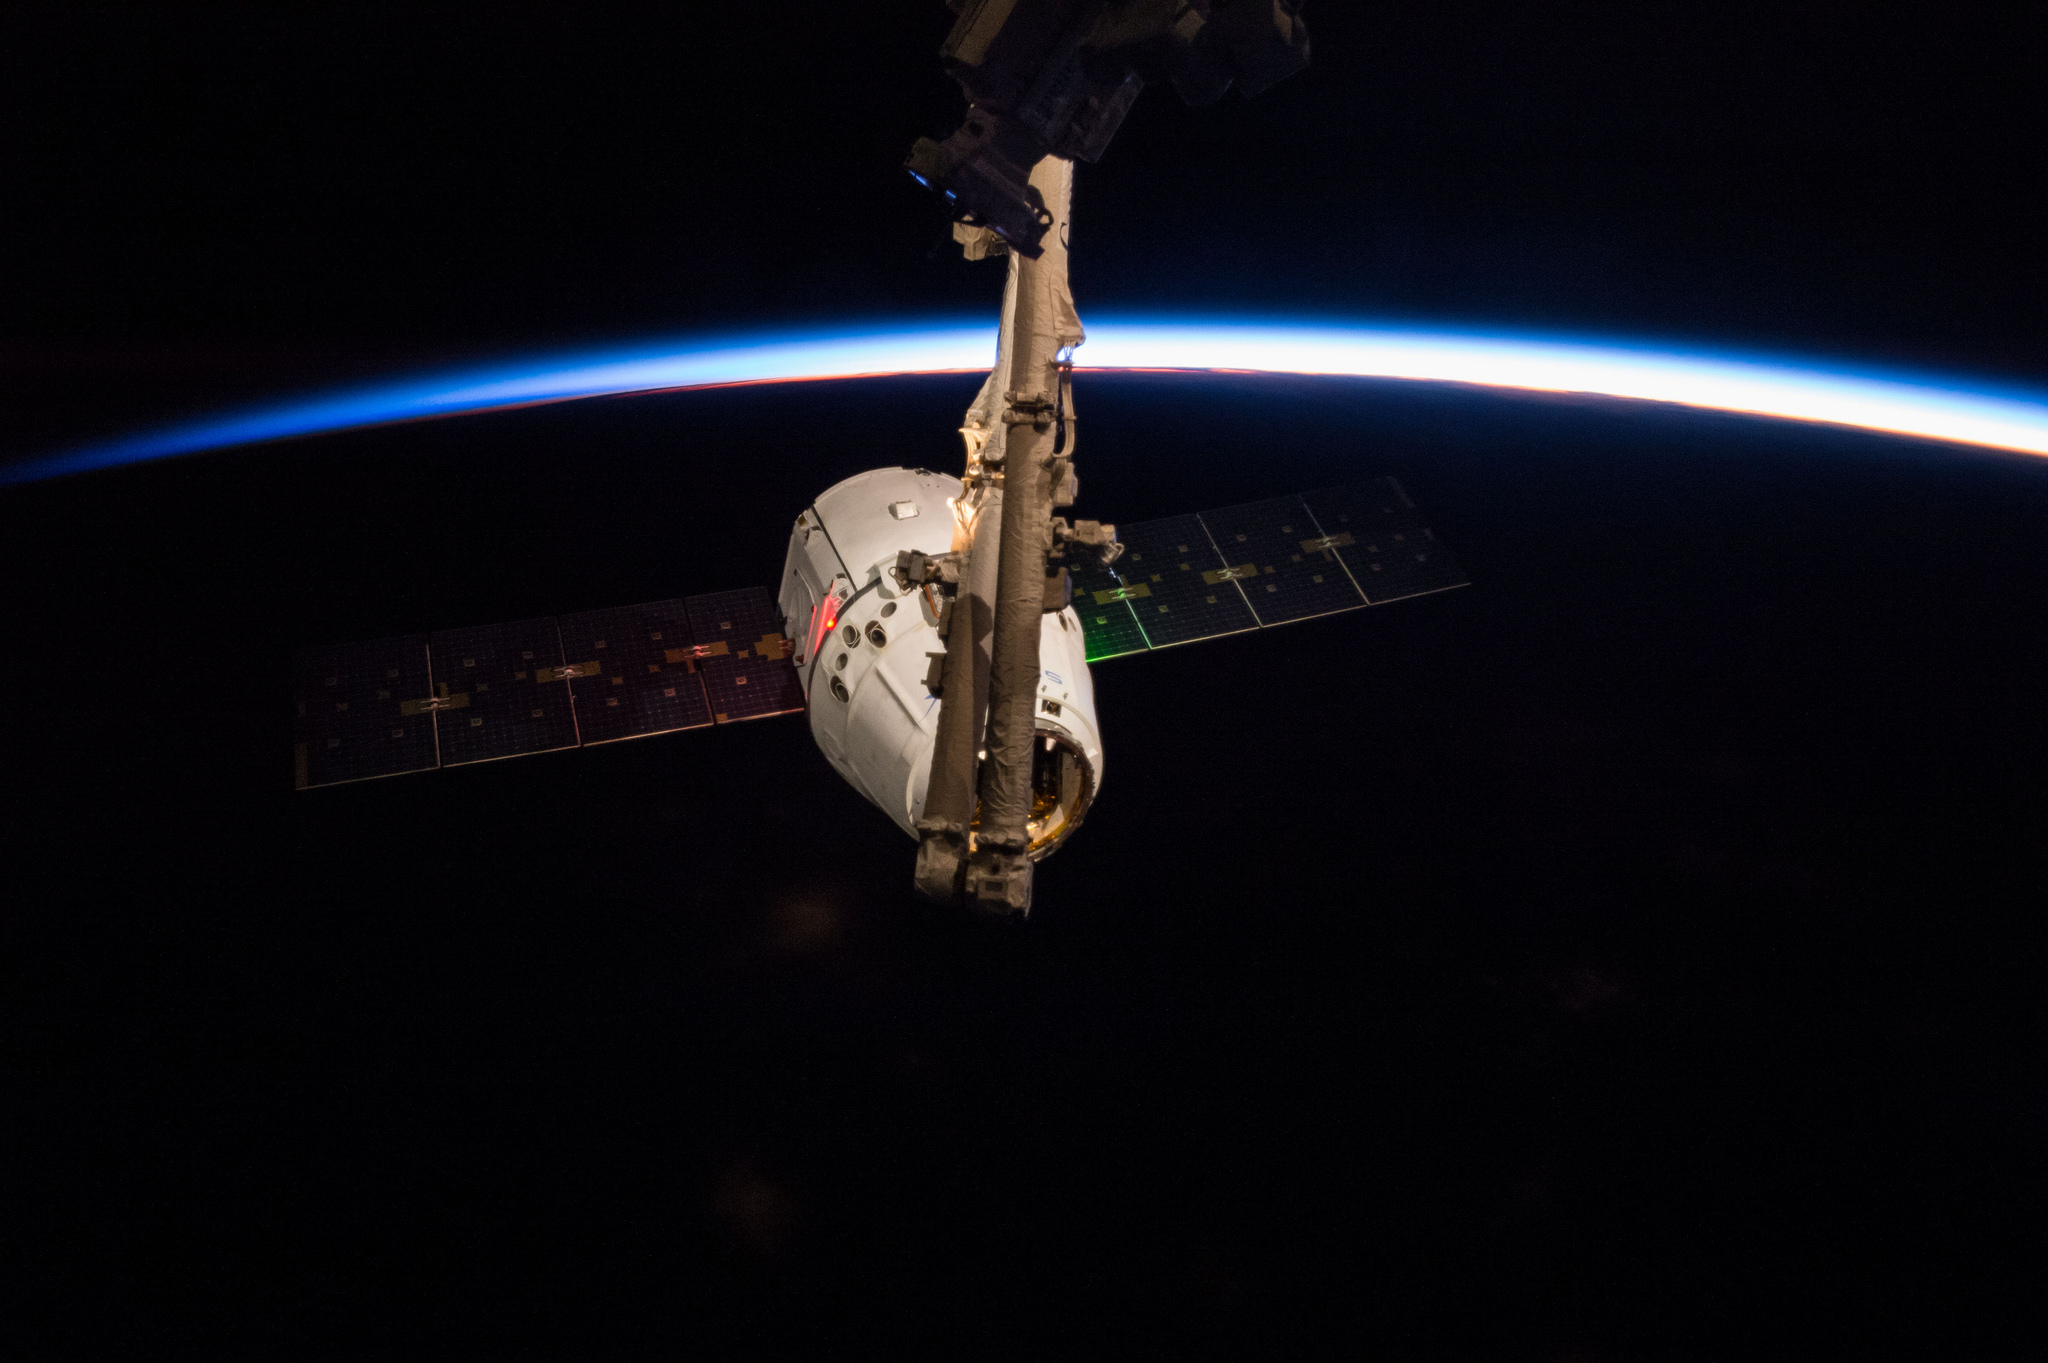 A robotic arm grabs SpaceX's Dragon spacecraft in 2015.